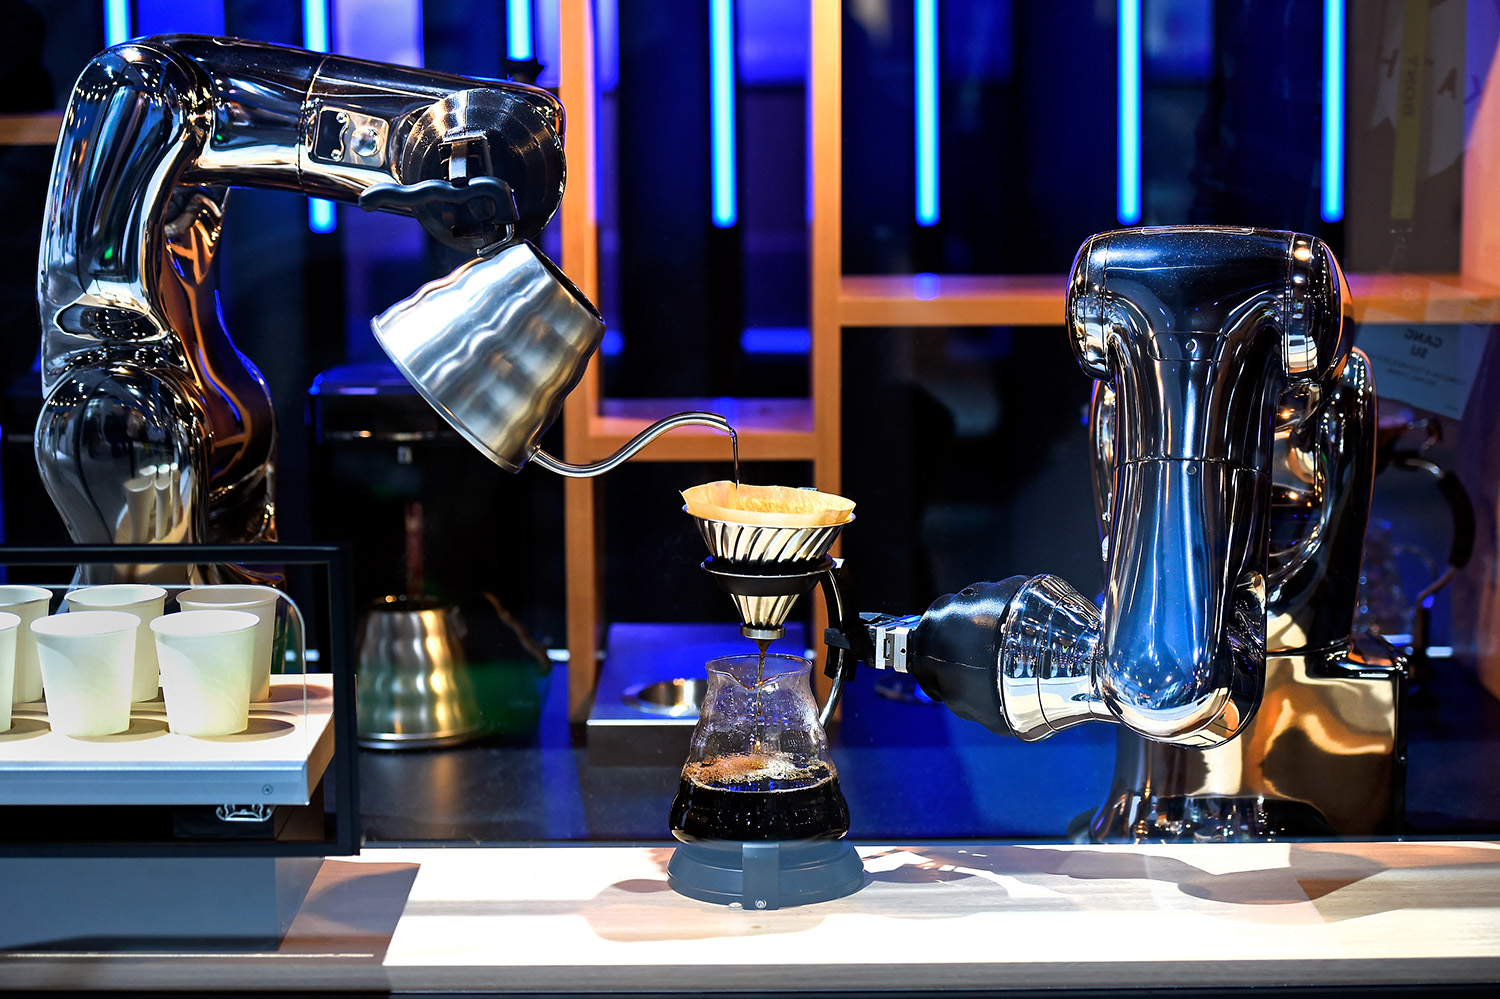 Robotic arms make coffee in a demonstration using a pair of VS-S2 Series robots at the Denso booth at CES 2017 at the Las Vegas Convention Center on January 5, 2017 in Las Vegas, Nevada. CES, the world's largest annual consumer technology trade show, runs through January 8 and features 3,800 exhibitors showing off their latest products and services to more than 165,000 attendees. (David Becker/Getty Images)